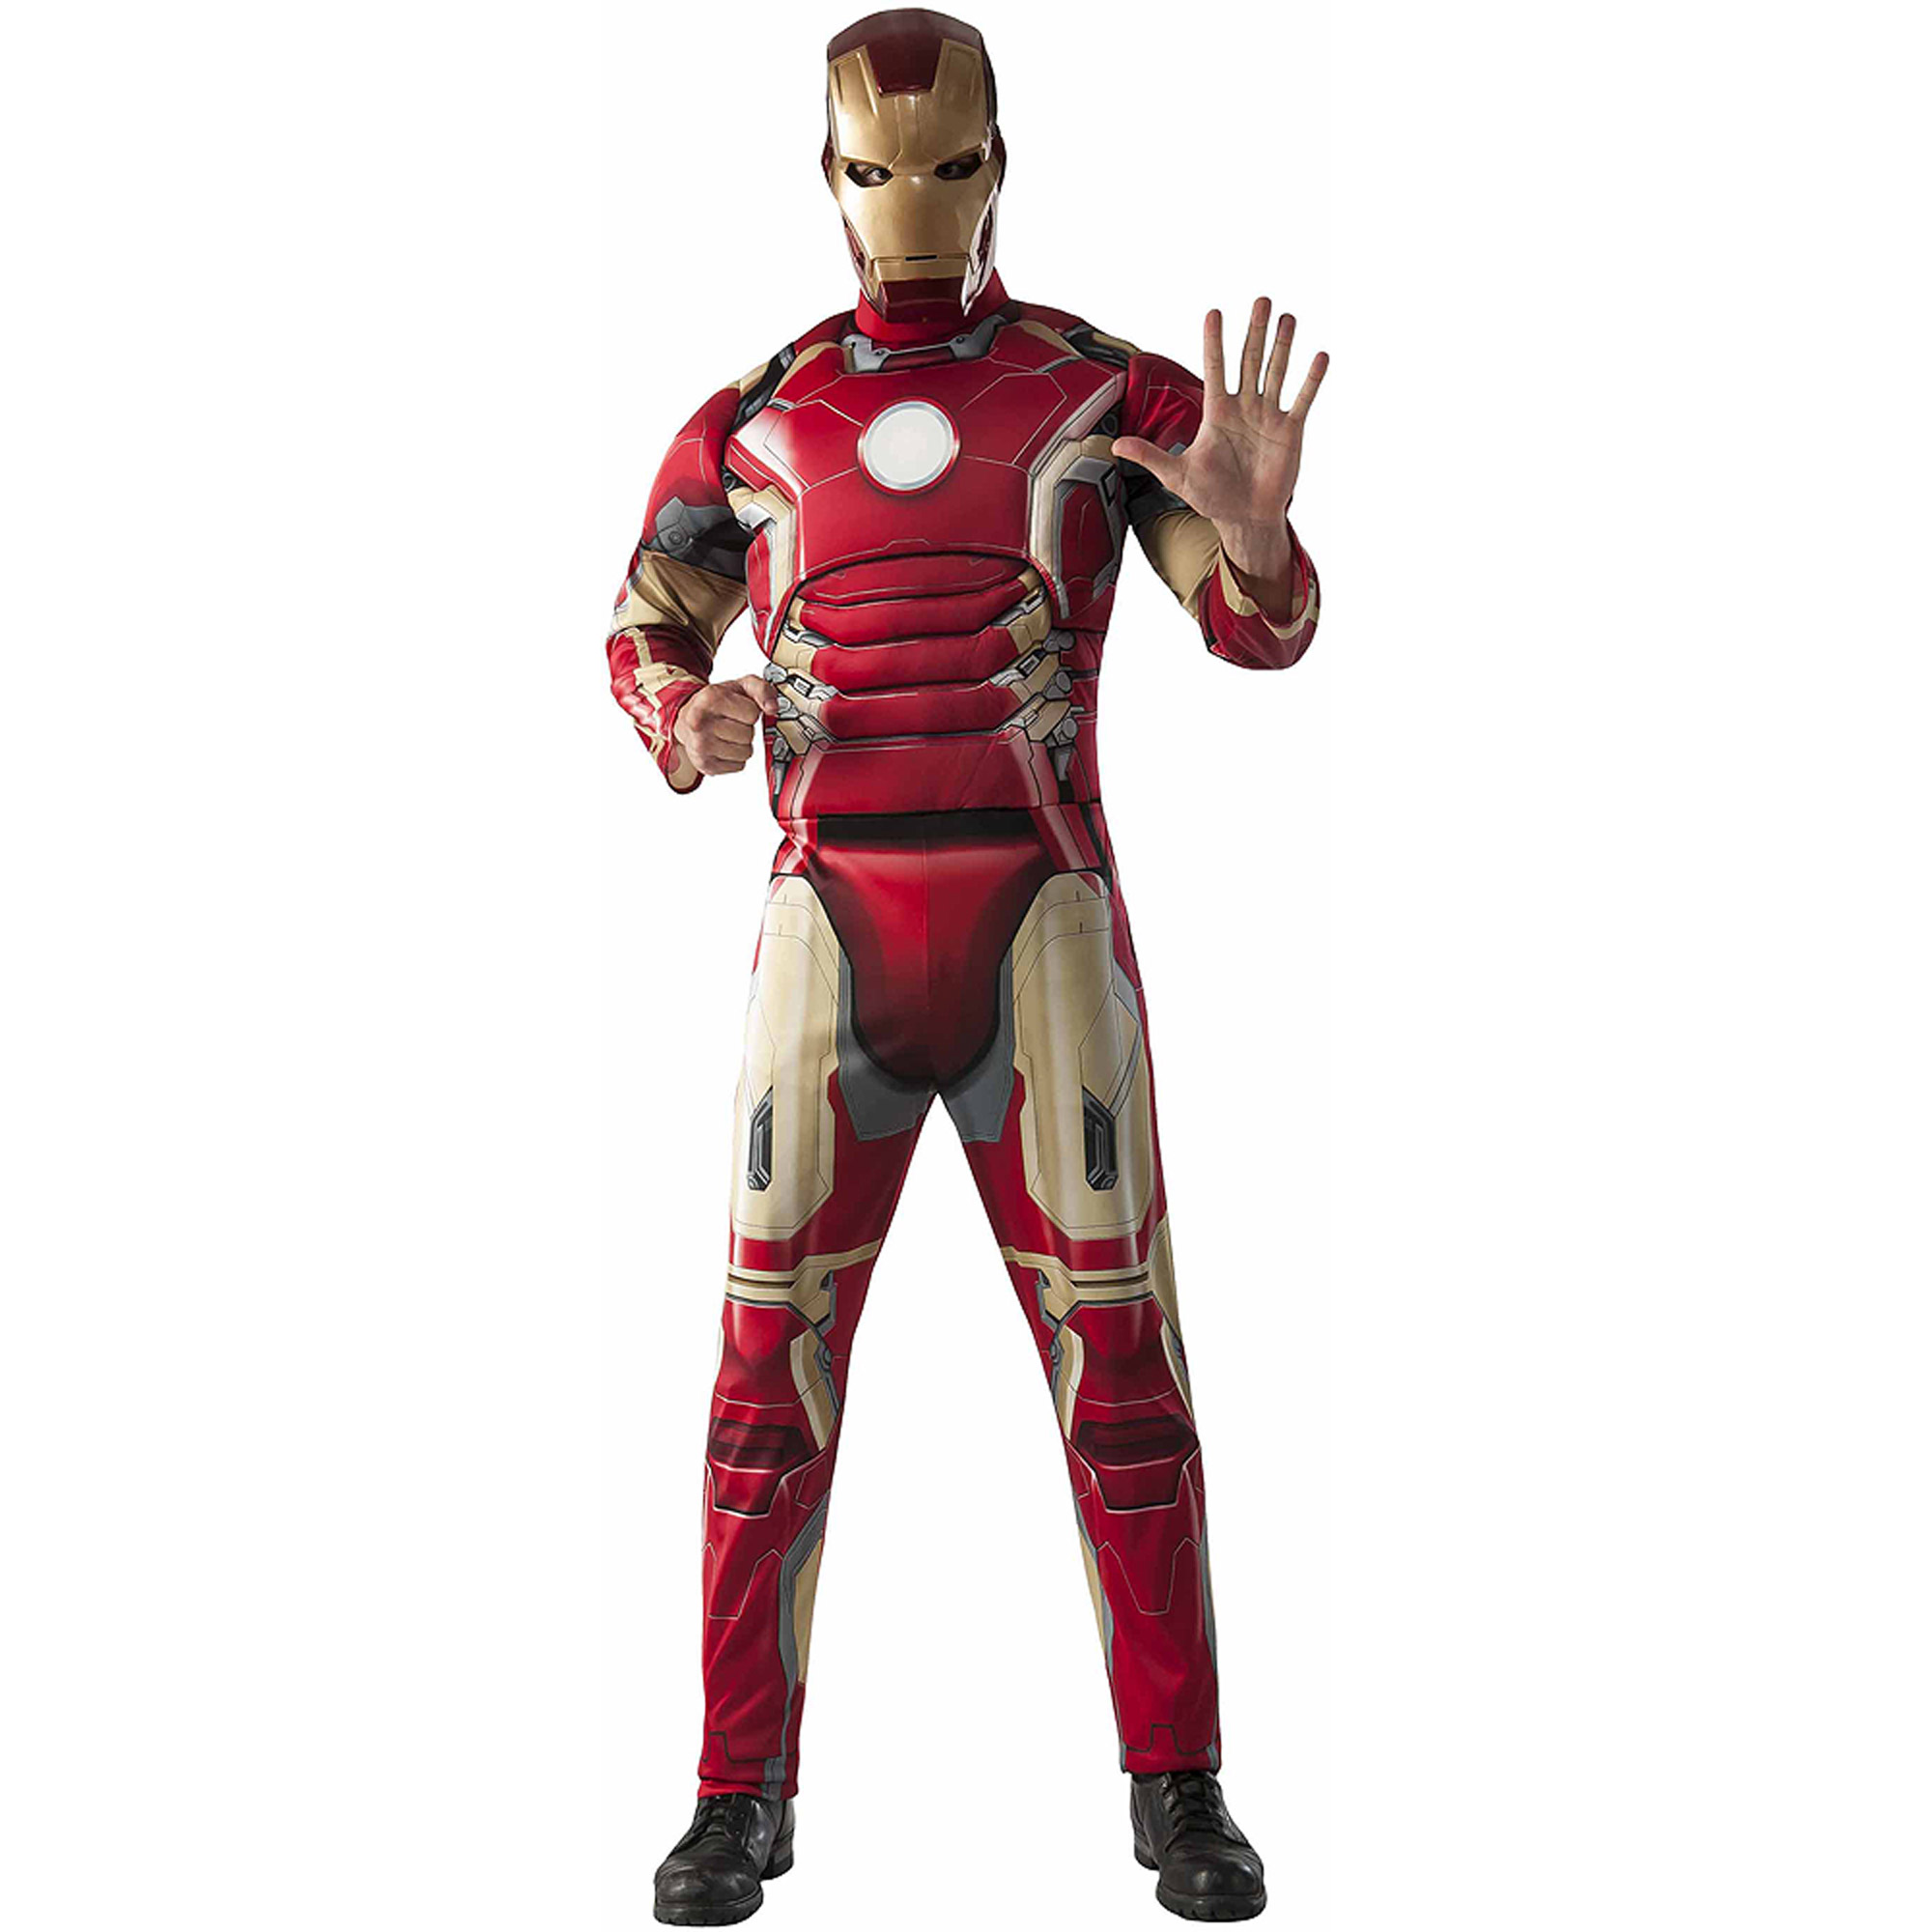 Avengers Ironman Fiber Fill Chest Men's Adult Halloween Costume